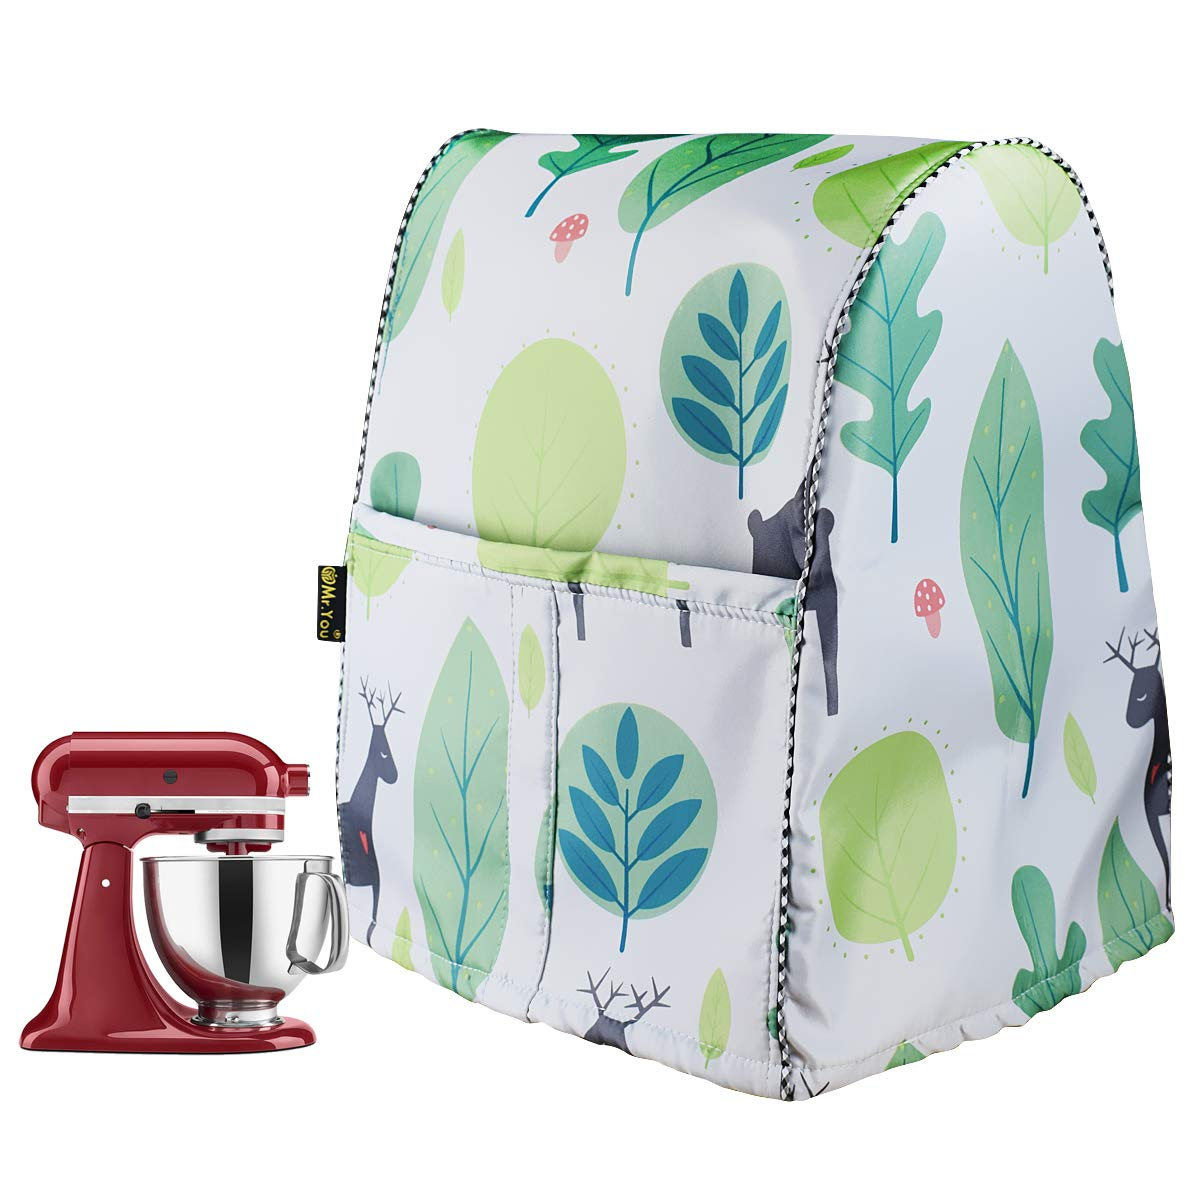 Stand Mixer Cover/Kitchen Mixer Cover with Organizer Bag, Fits All Tilt Head & Bowl Lift Models(W11.8D11H16in,Fallow Deer)